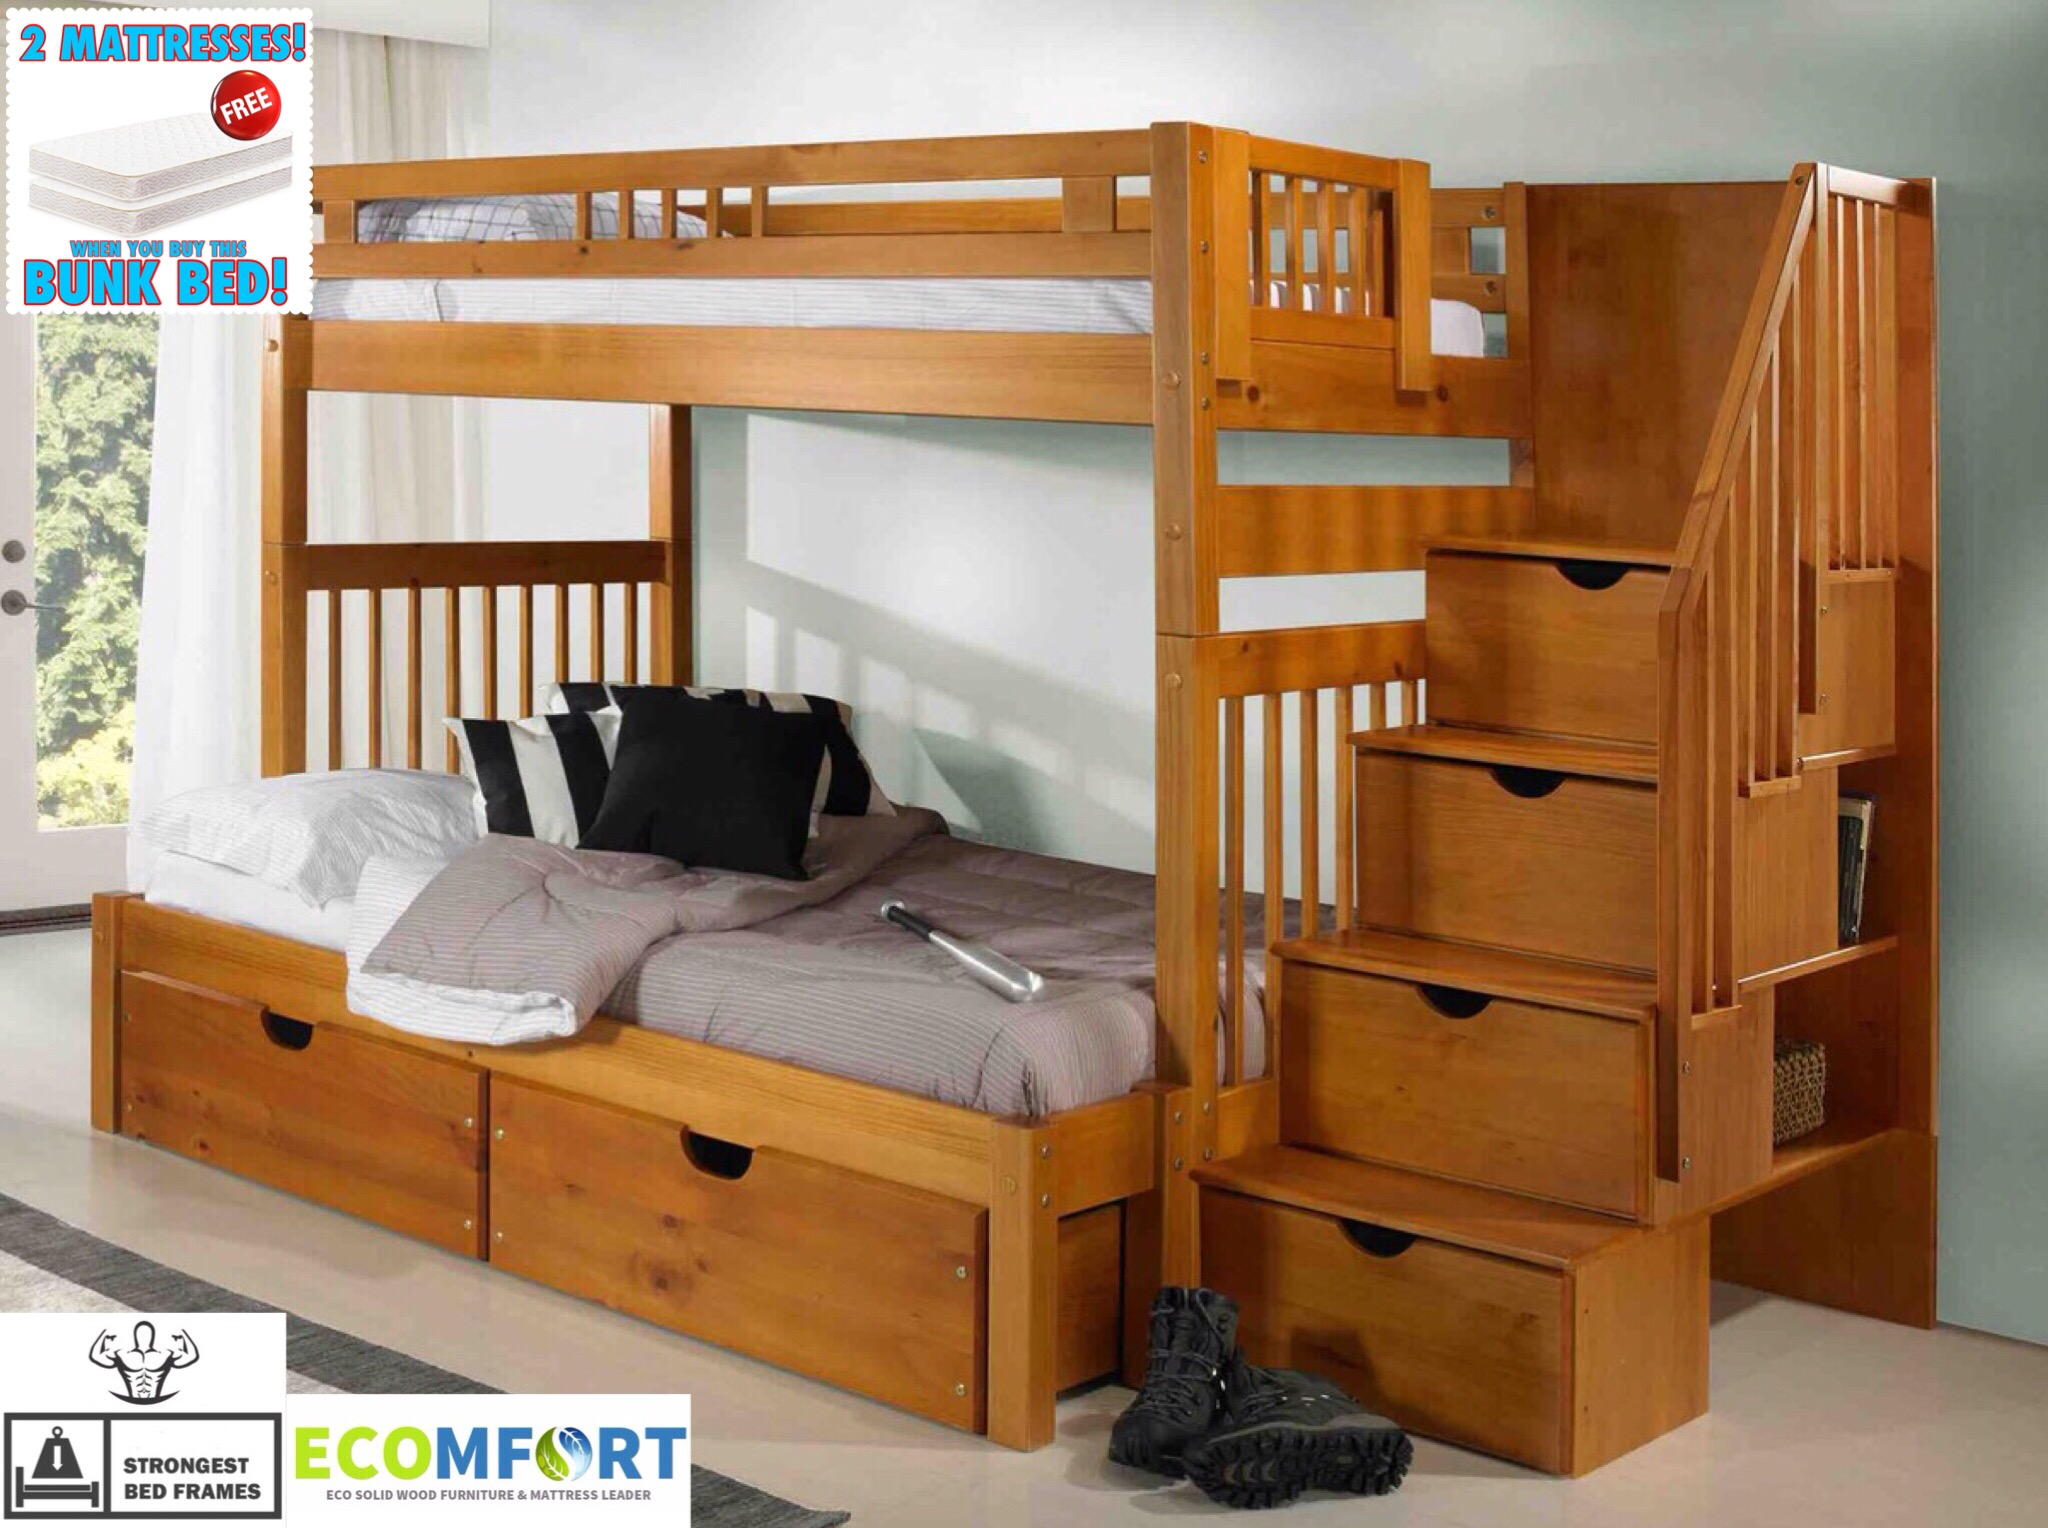 Under Bed Storage Frame New England Solid Wood Twin Full Staircase Bunk Bed Shown With Optional Under Bed Storage Drawers